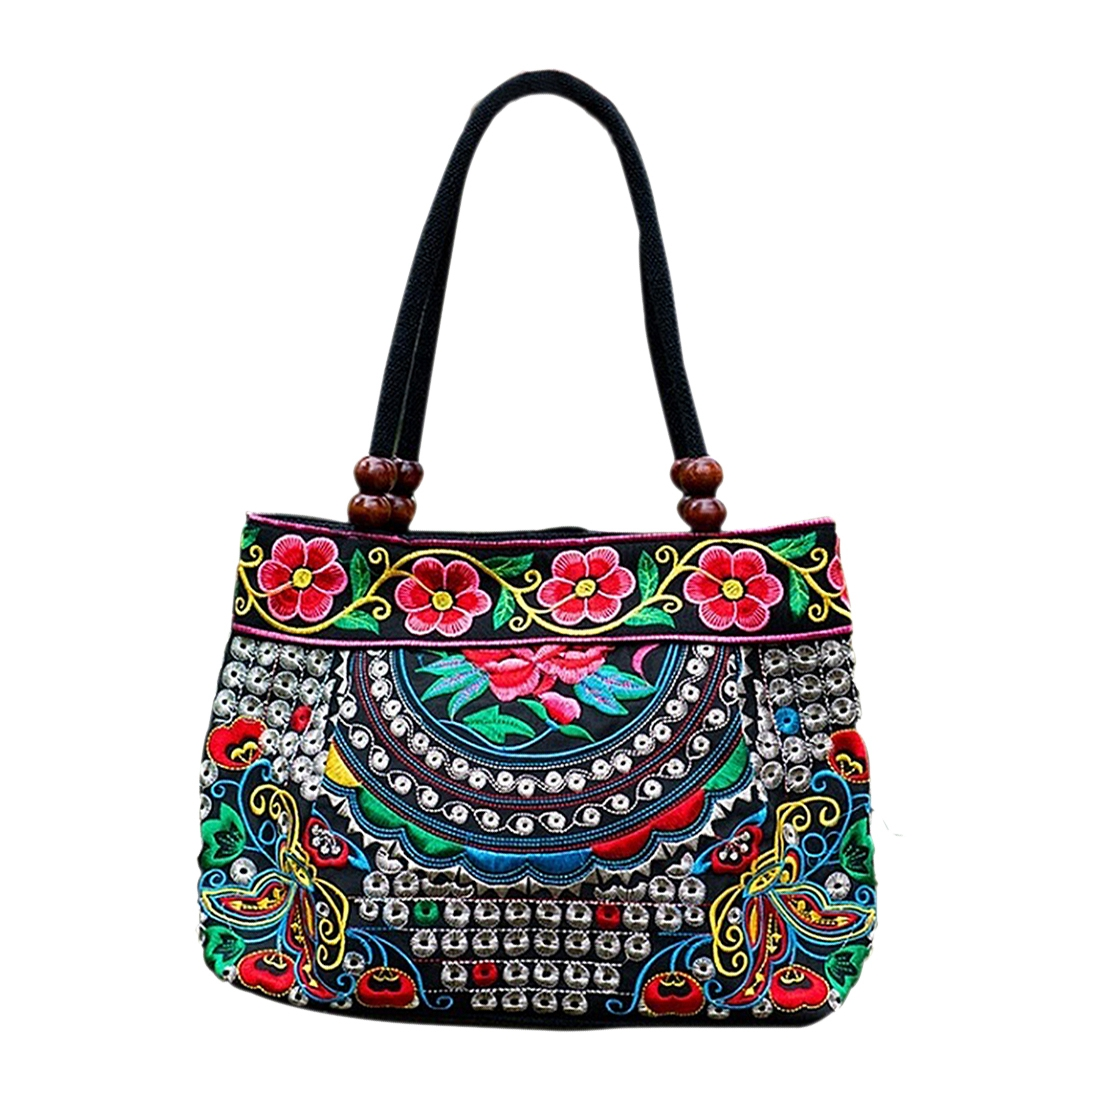 HEBA Chic Chinese Style Women Handbag Embroidery Ethnic Summer Fashion Handmade Flowers Ladies Tote Shoulder Bags Cross-body